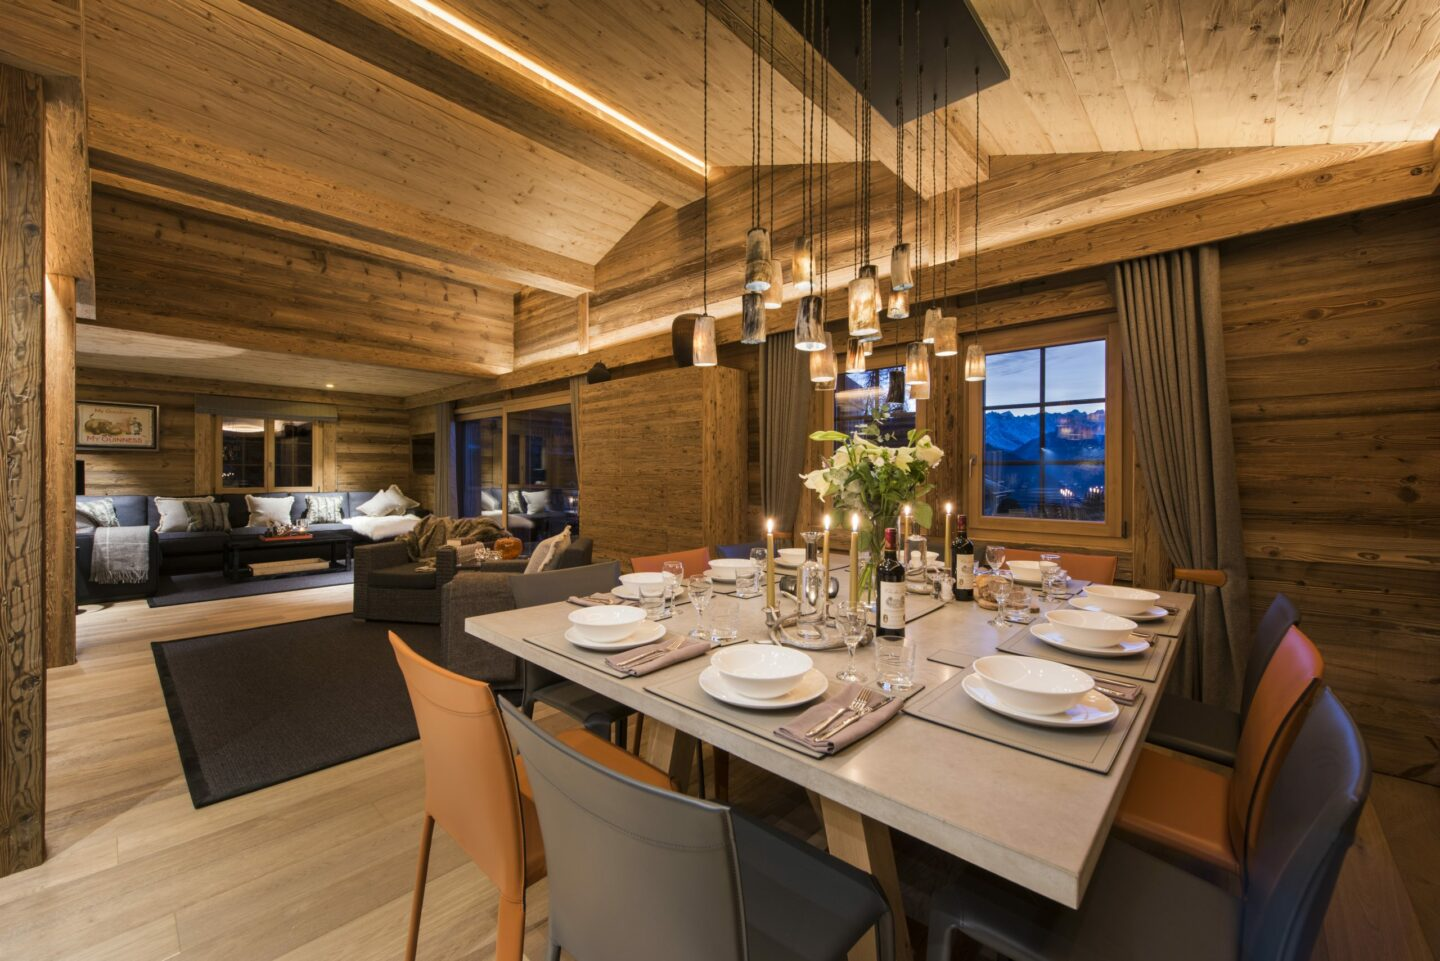 Dining table set for the evening at Chalet Daphne in Verbier